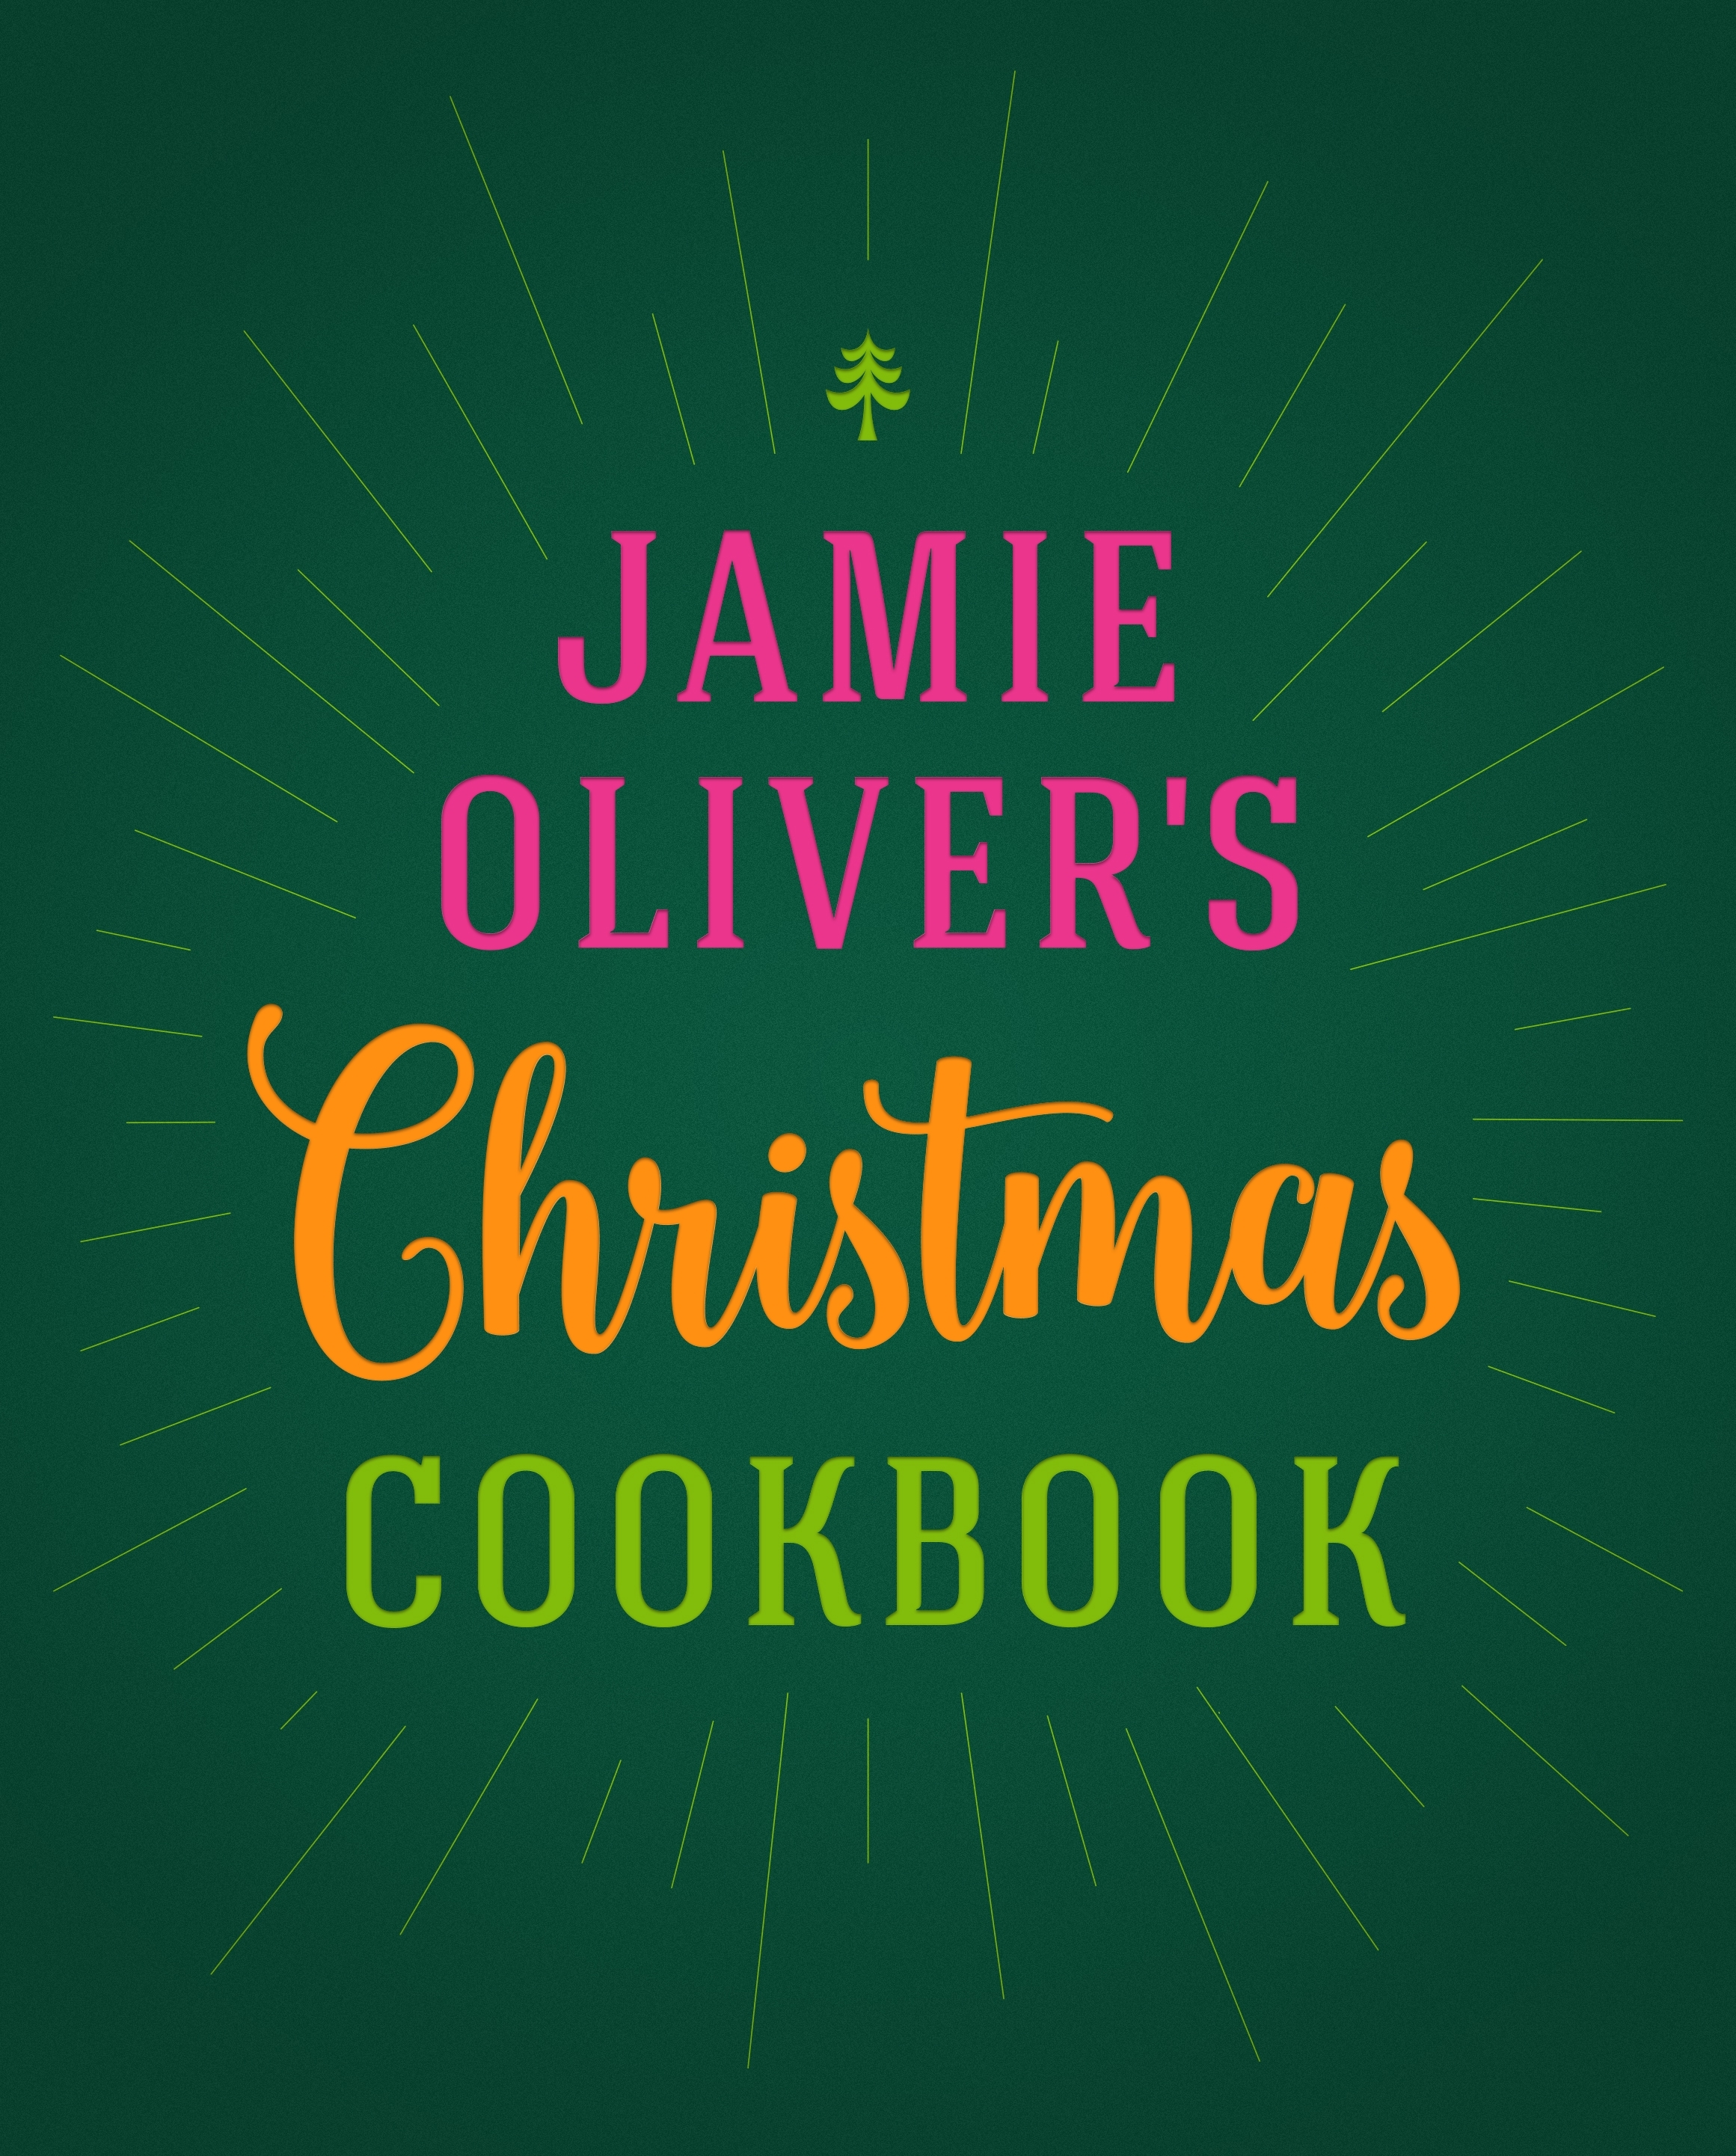 Jamie's Christmas Cookbook